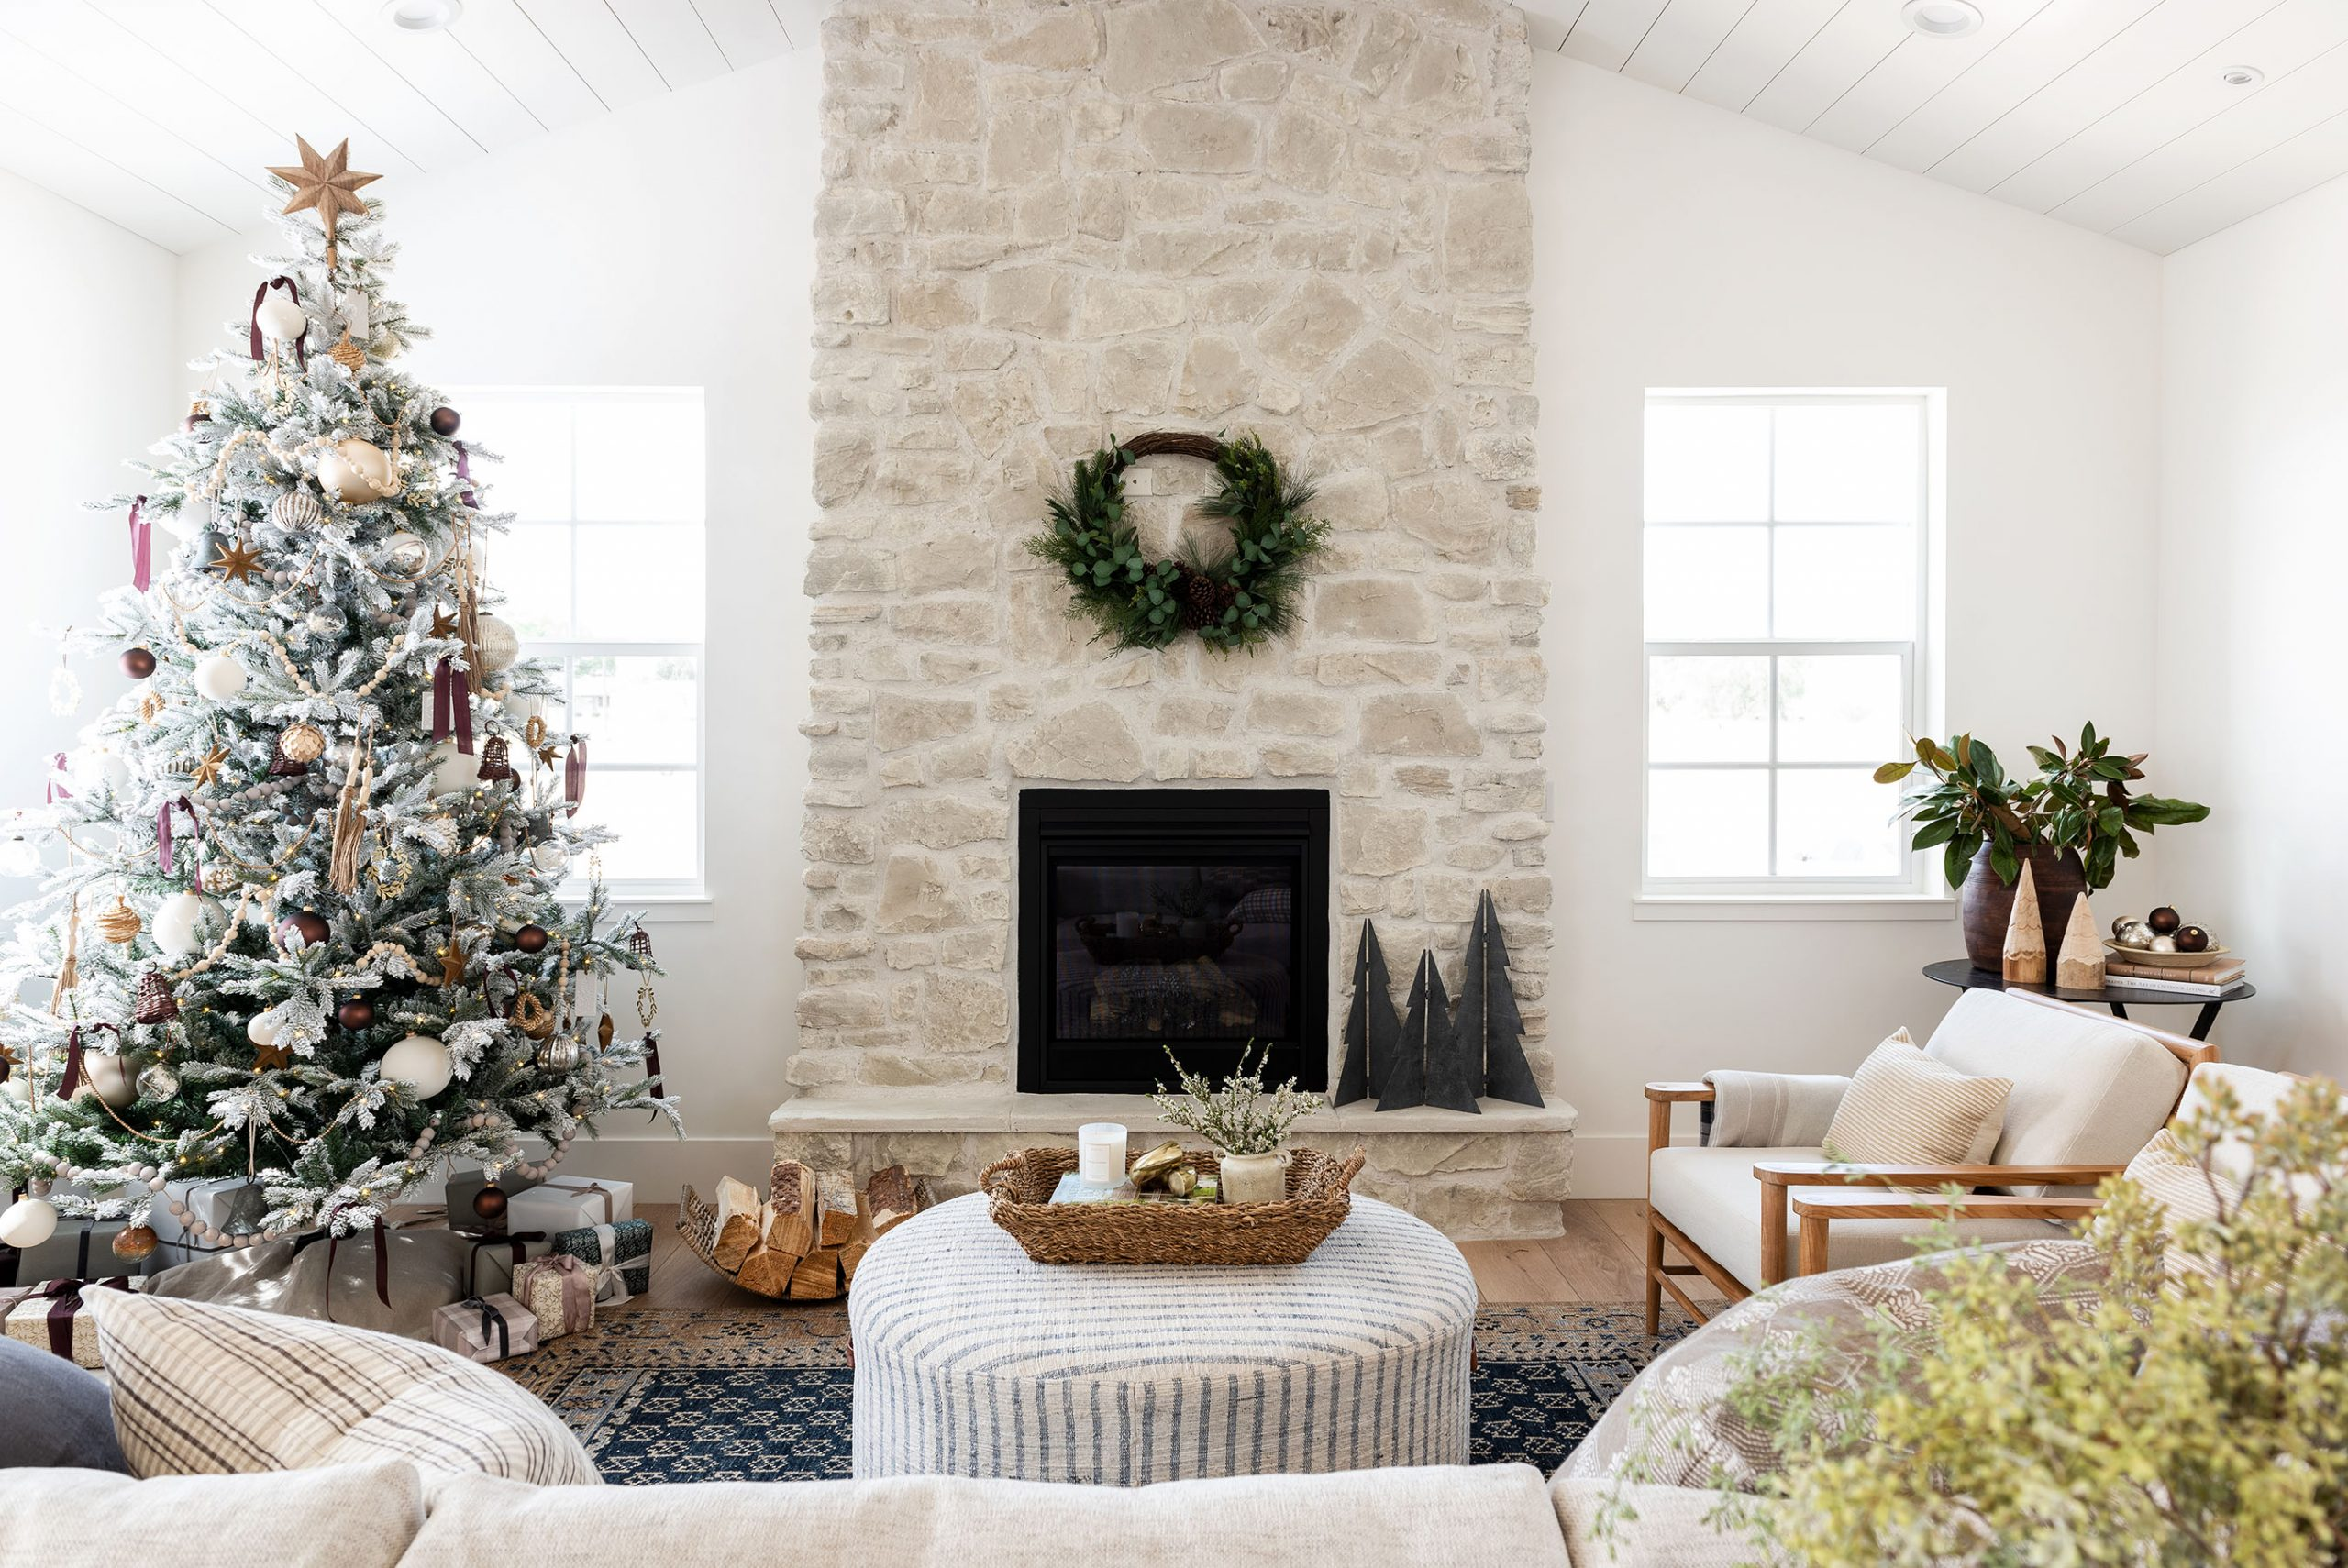 Our Step-By-Step Tree Decorating Guide